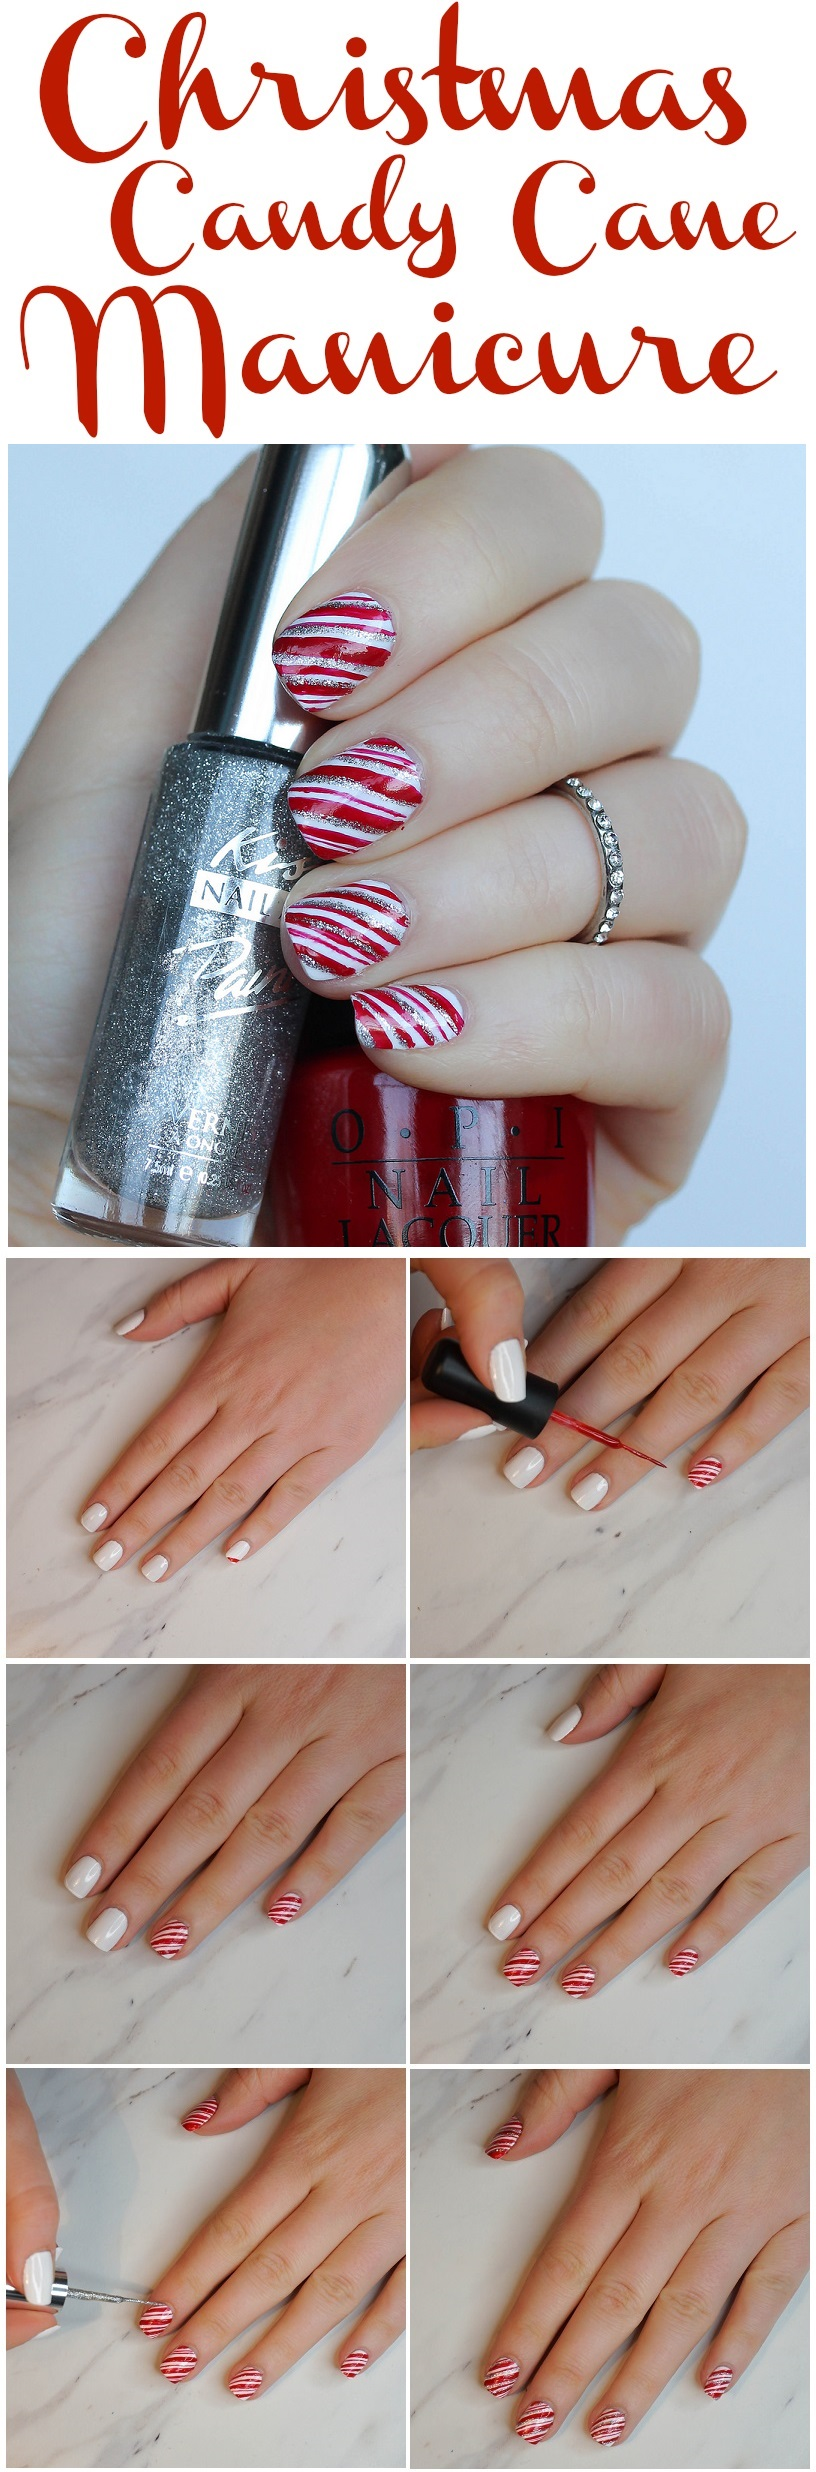 Easy Step-by-Step Christmas Candy Cane Manicure Tutorial